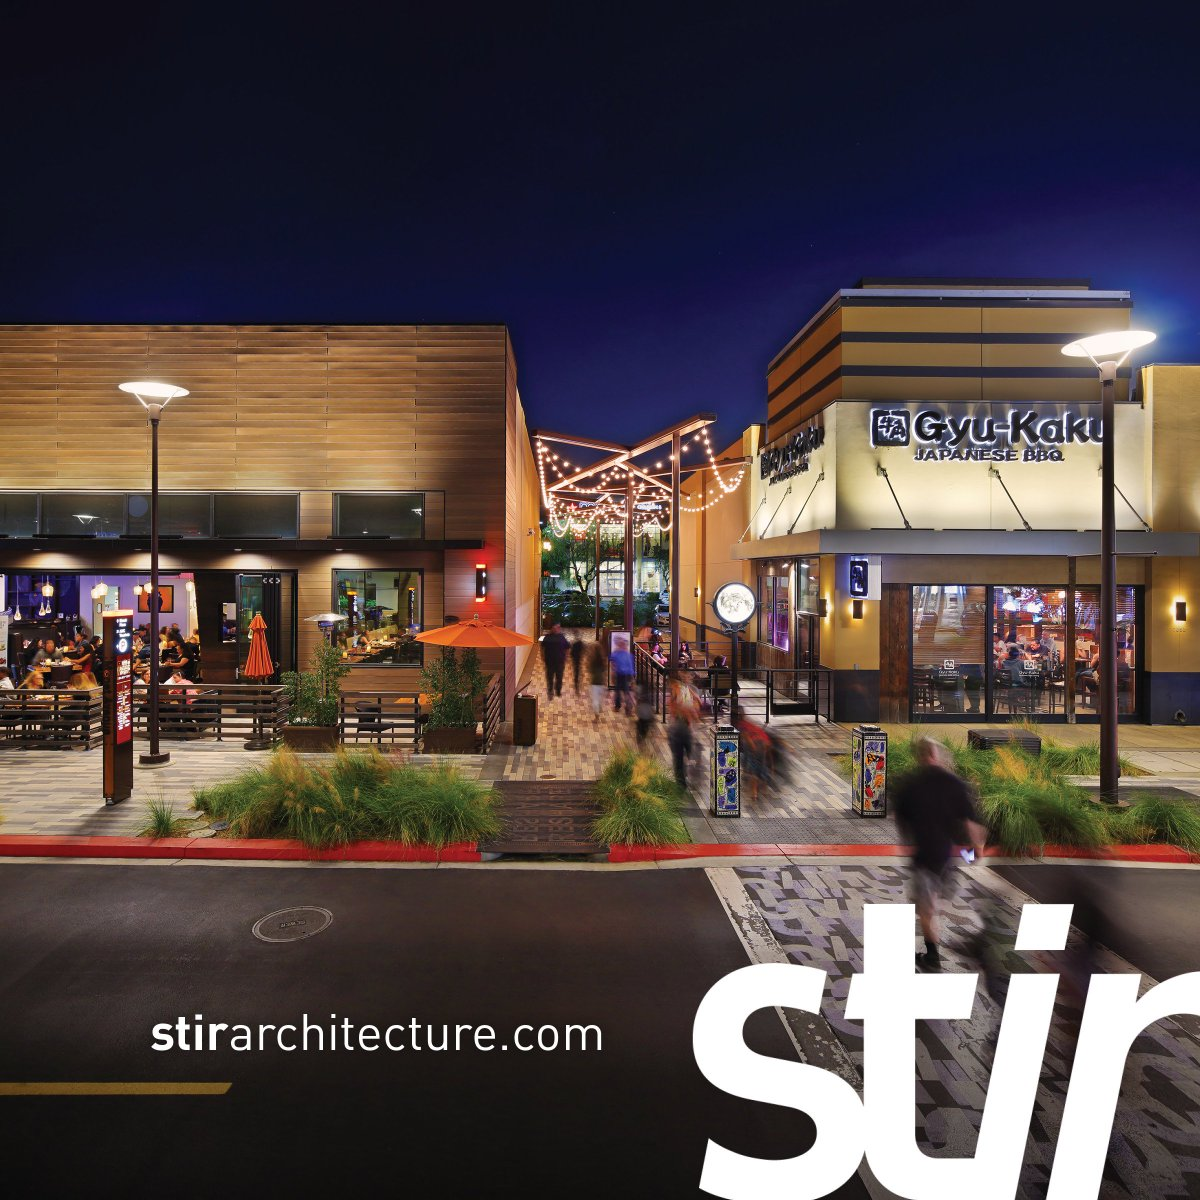 victoria gardens rancho cucamonga stores » Full HD MAPS Locations ...